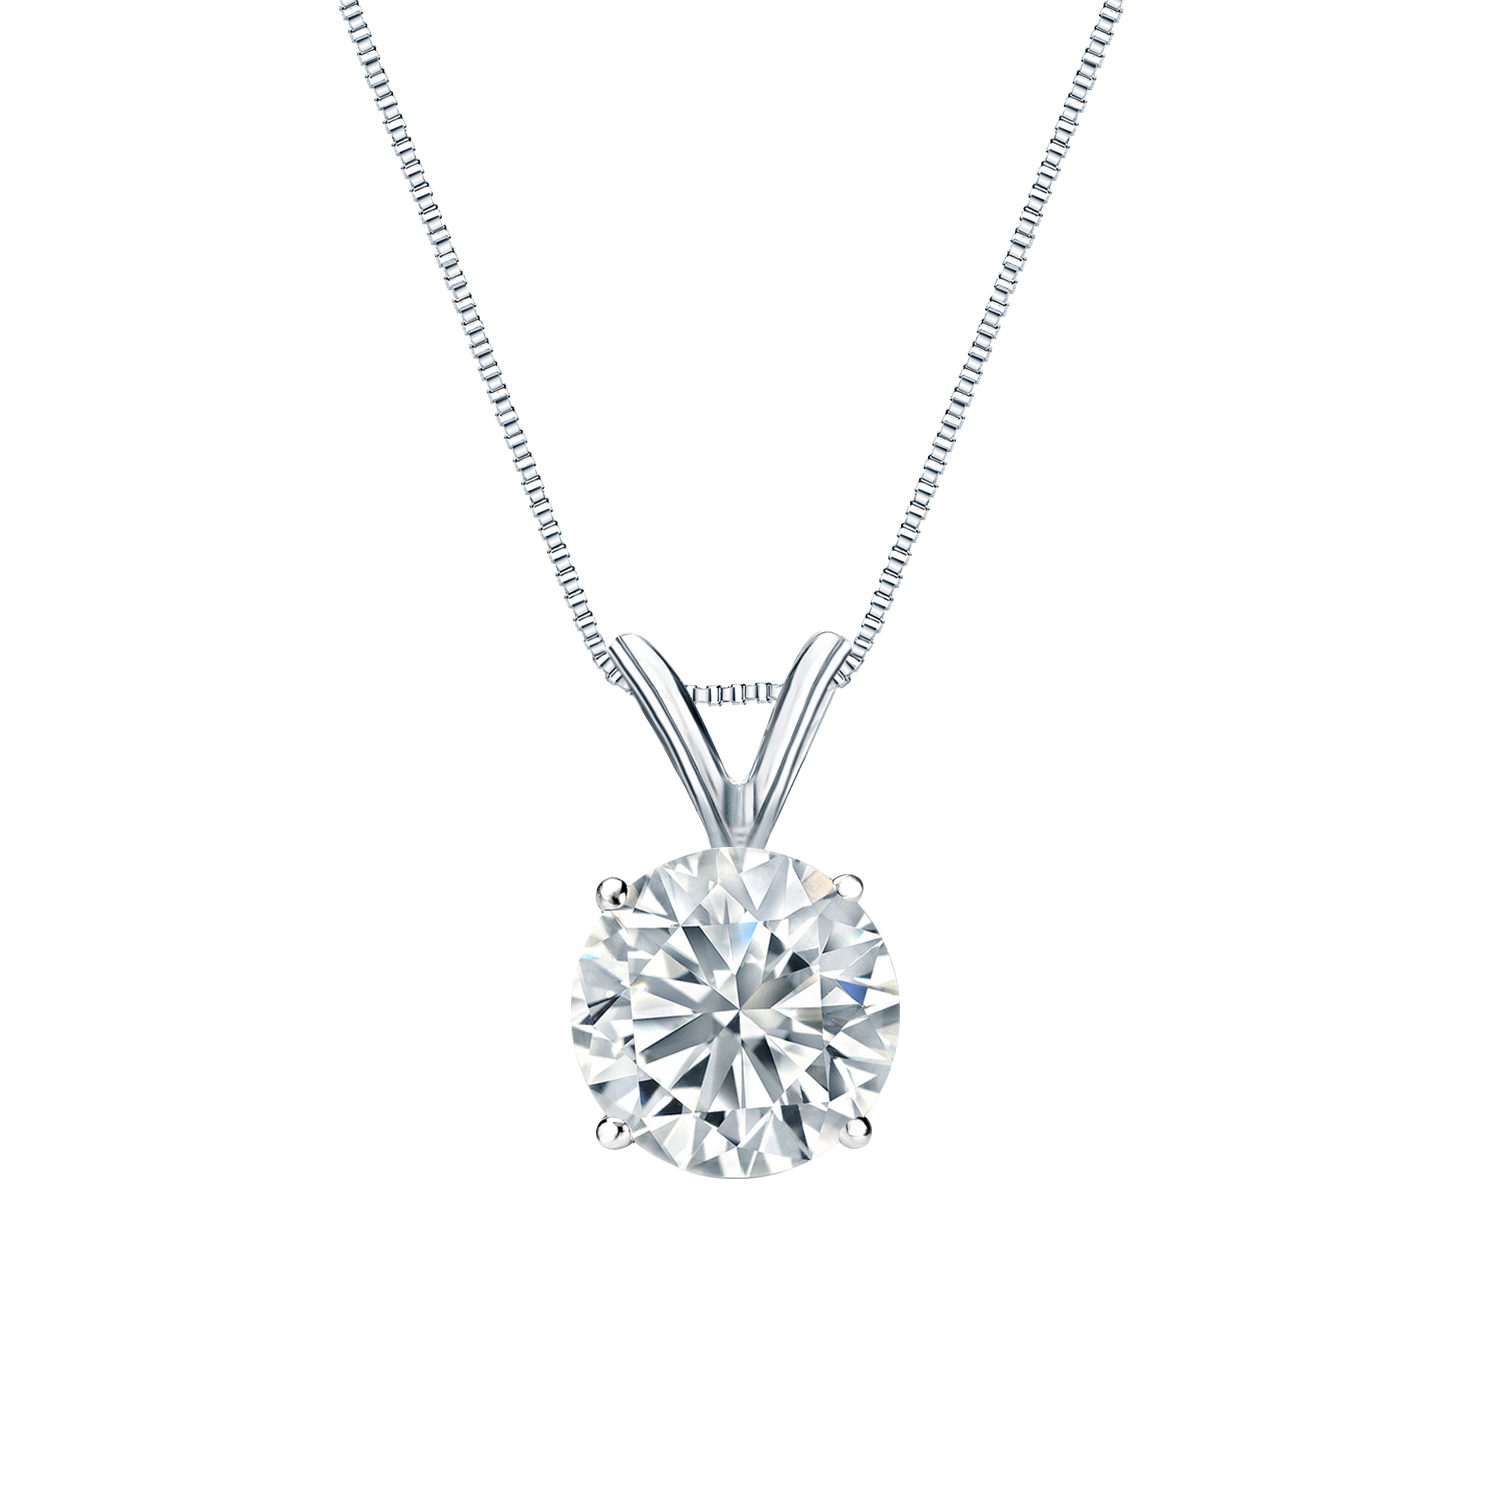 Certified 0.20 ct. tw. Round Diamond Solitaire Pendant in 14k White Gold 4-Prong Basket (G-H, VS)